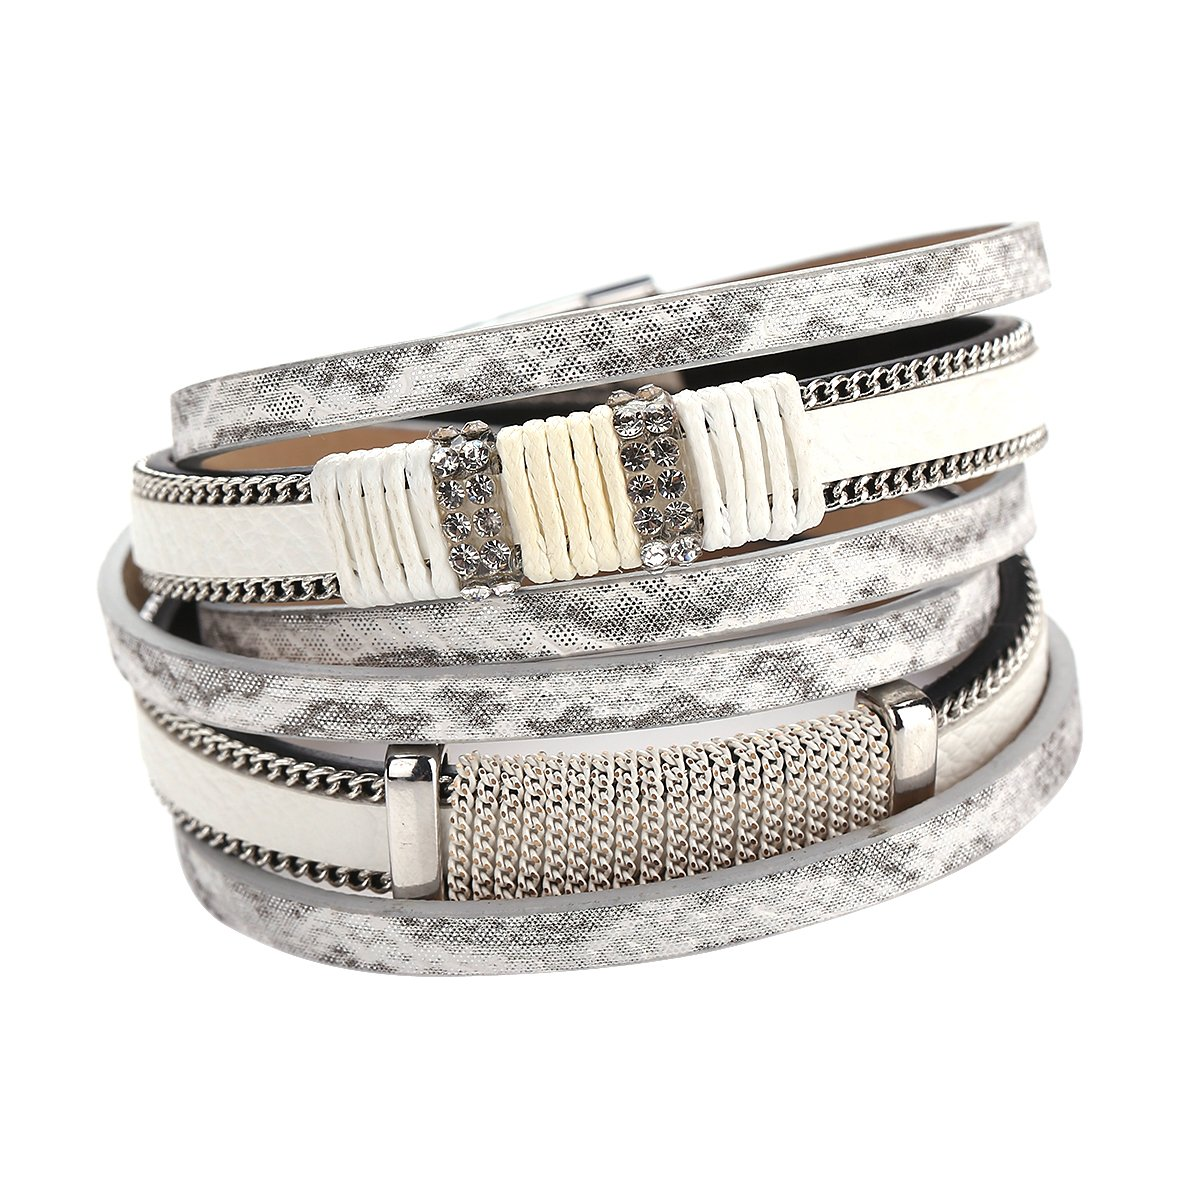 HighPlus Elegant Statement Multilayer Leather Bracelet Chain Bangle Bracelets